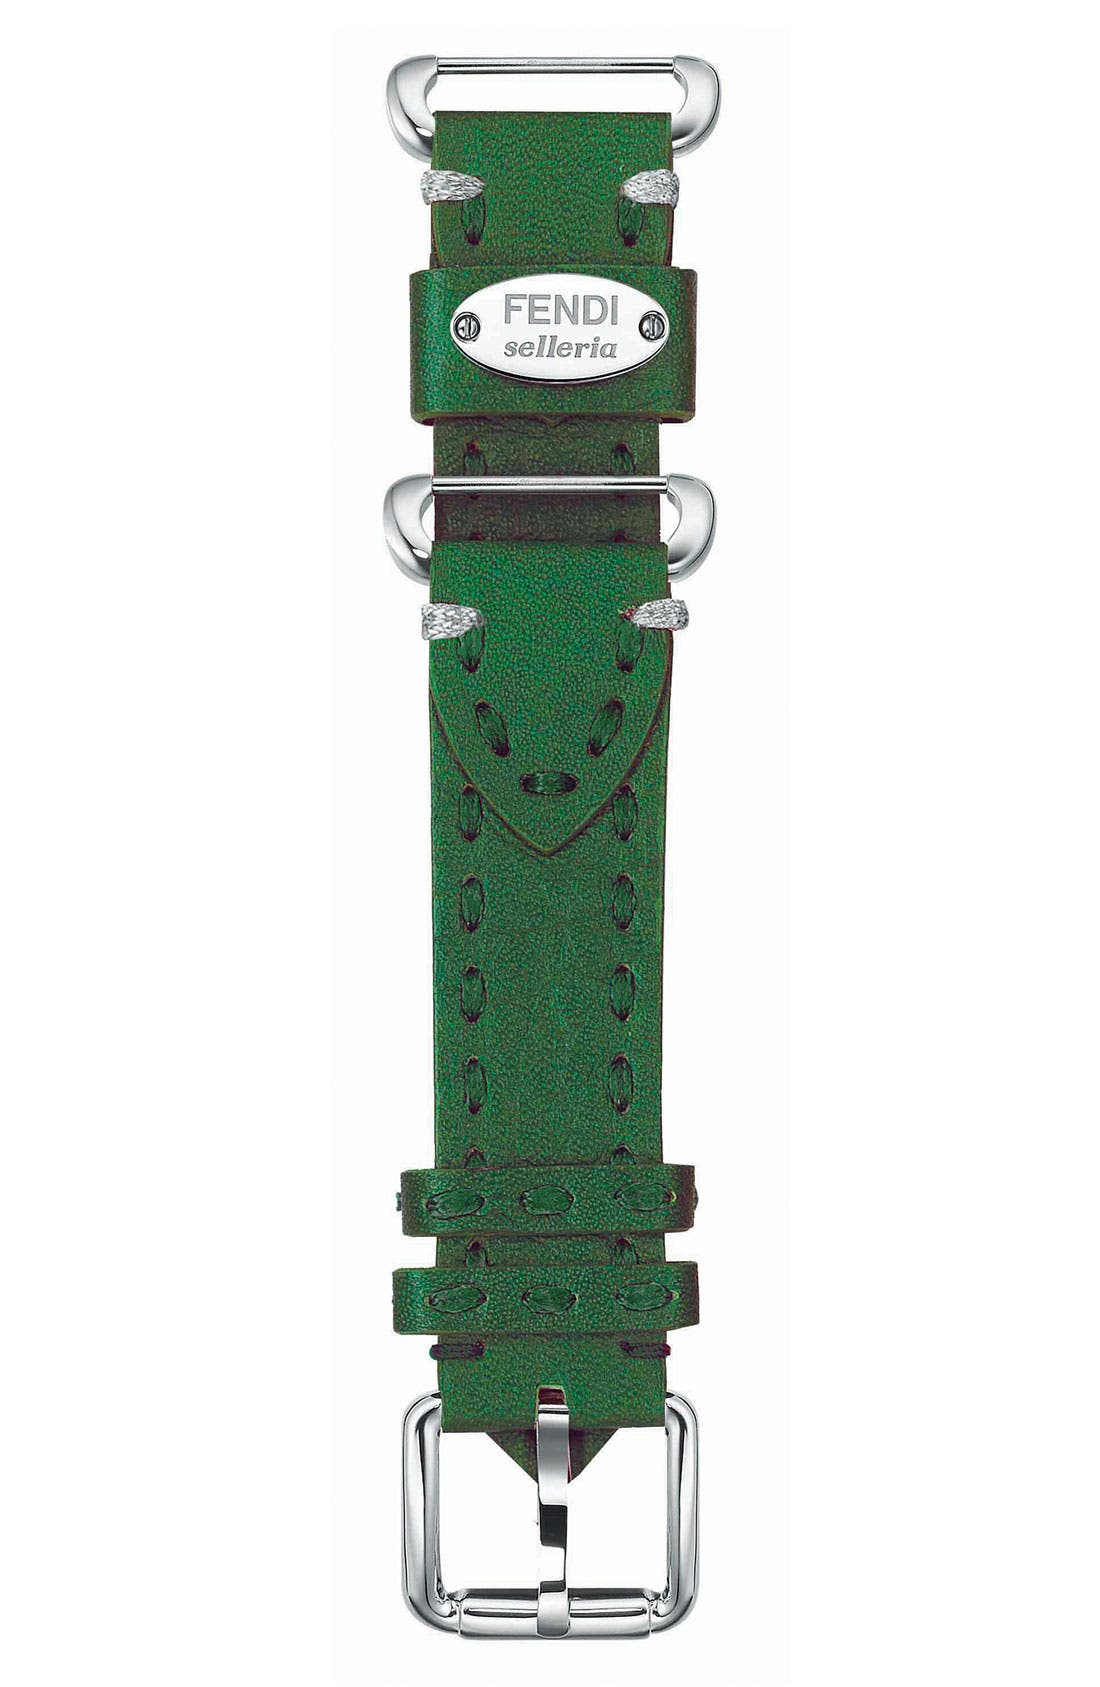 Main Image - Fendi 'Selleria' 18mm Watch Strap